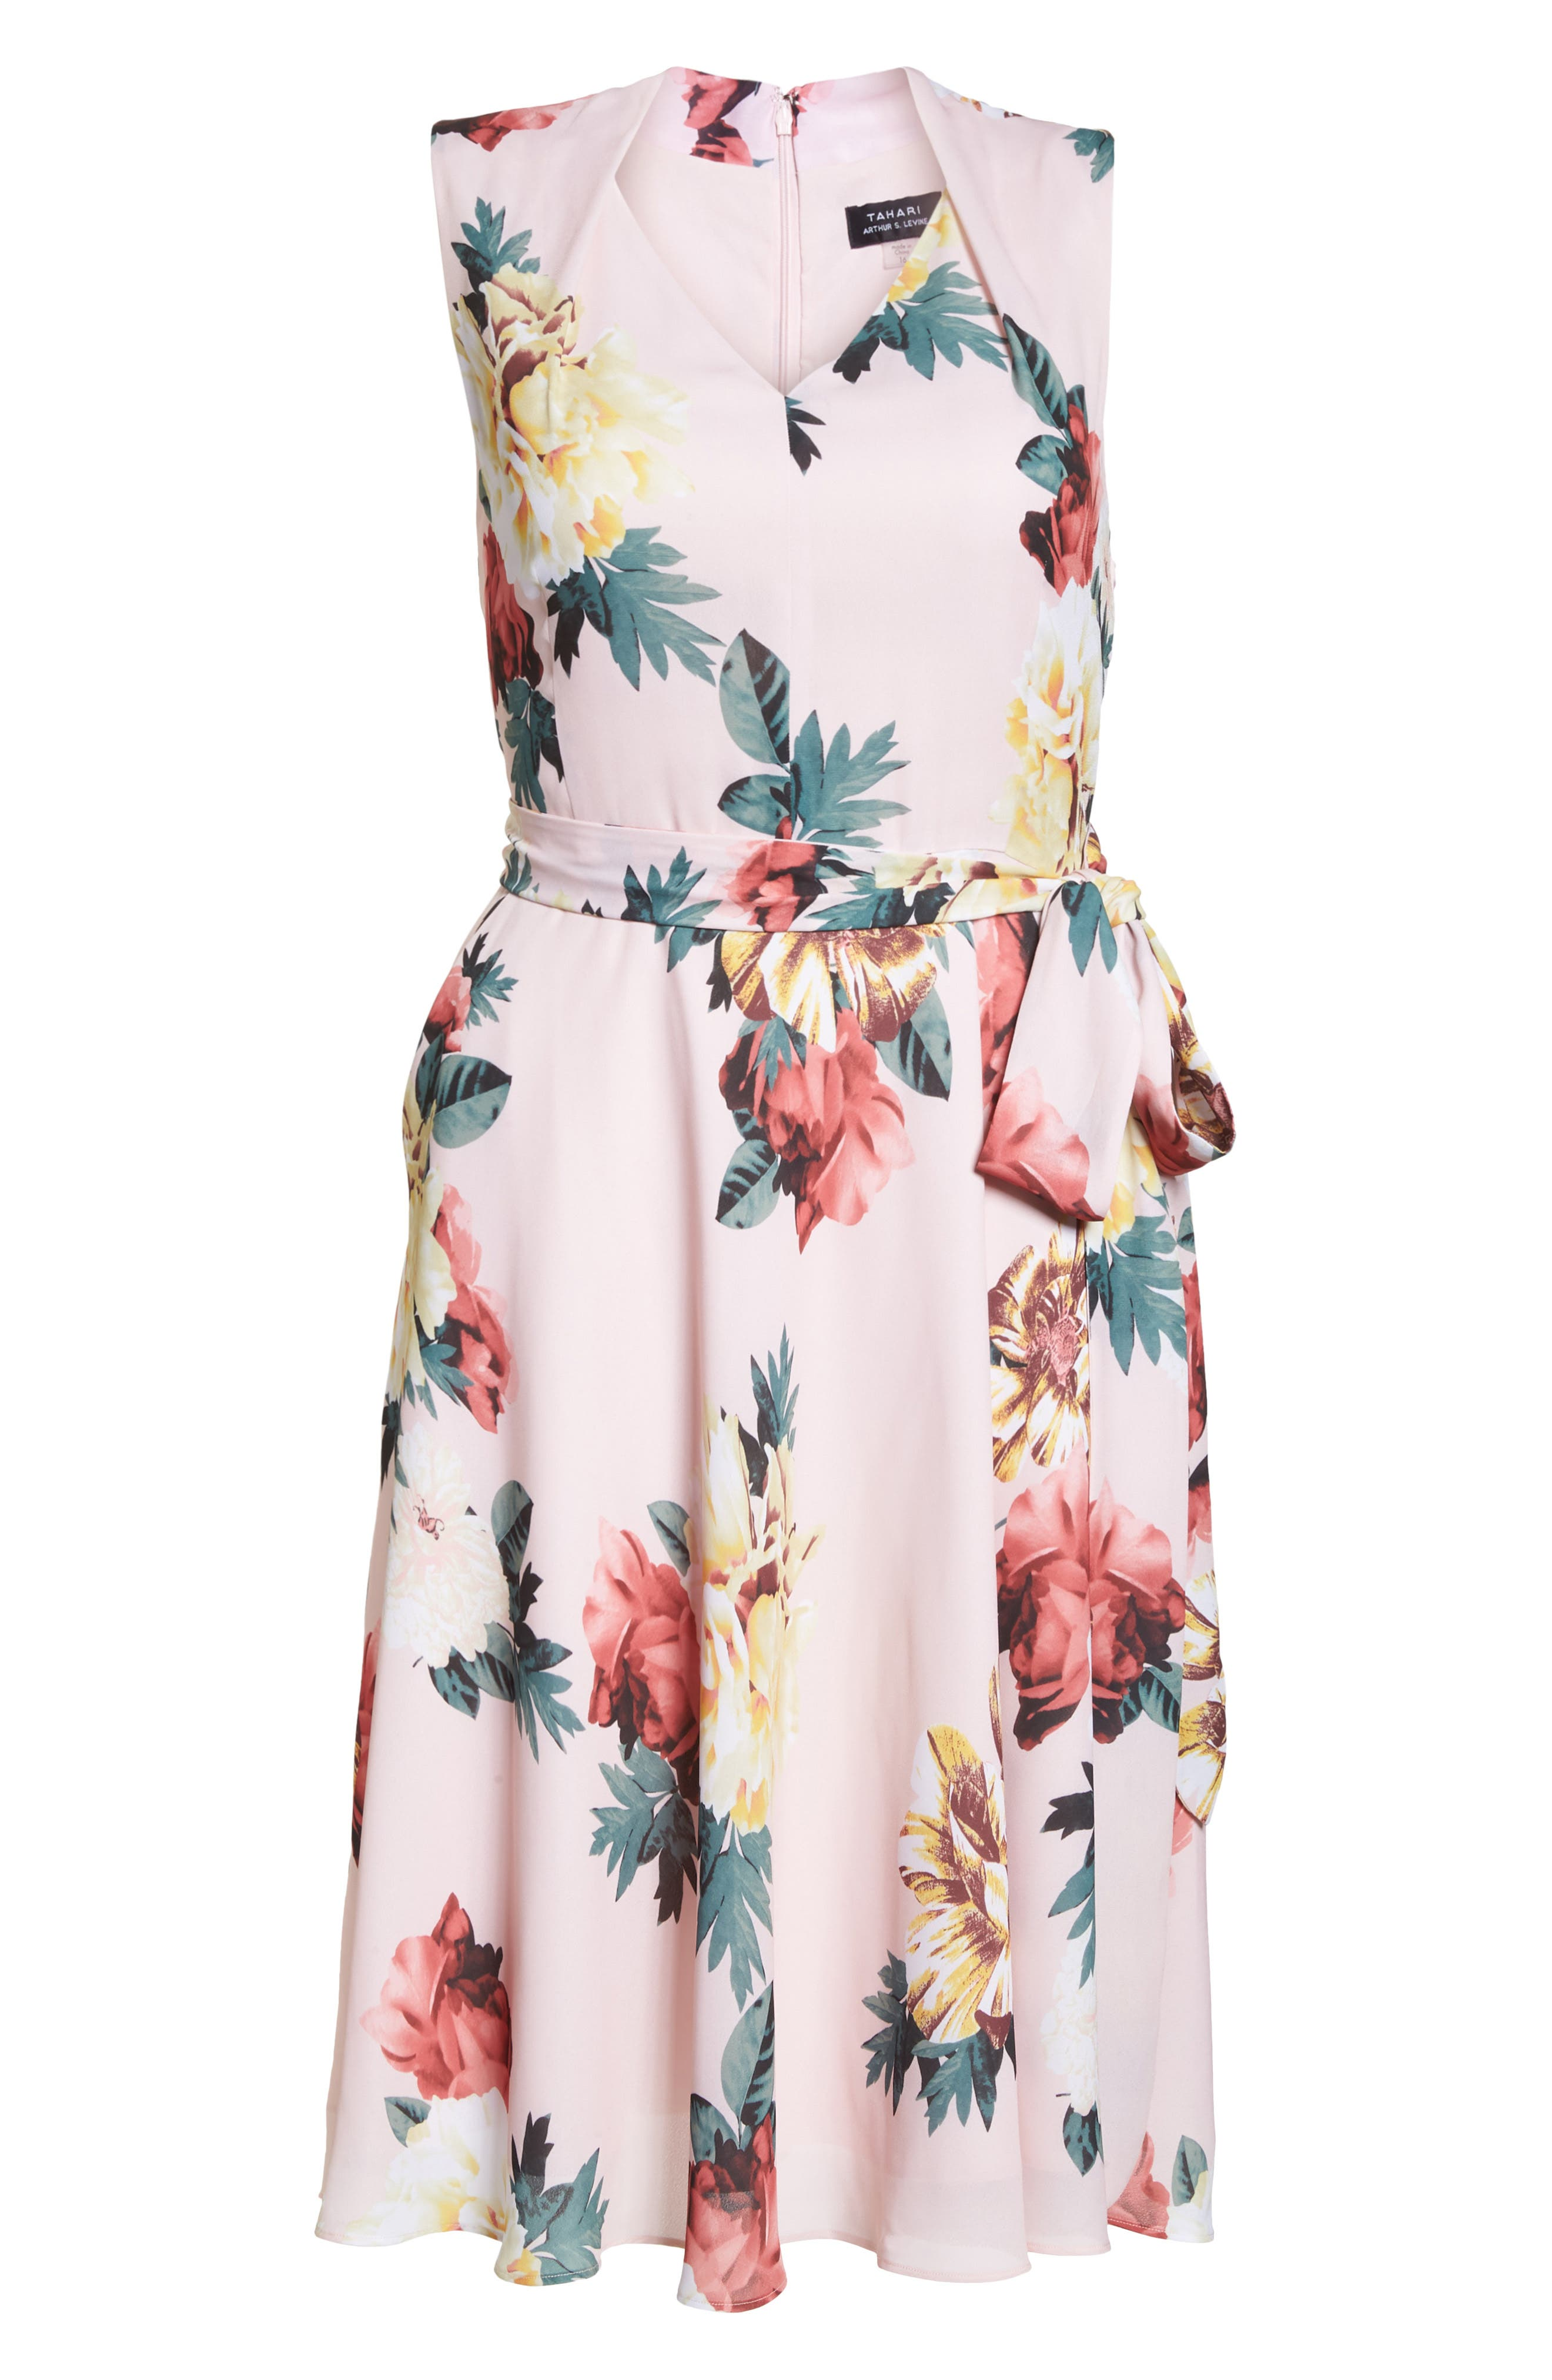 Floral Print Tie Waist Fit & Flare Dress,                             Alternate thumbnail 7, color,                             Blush/ Lemon/ Coral